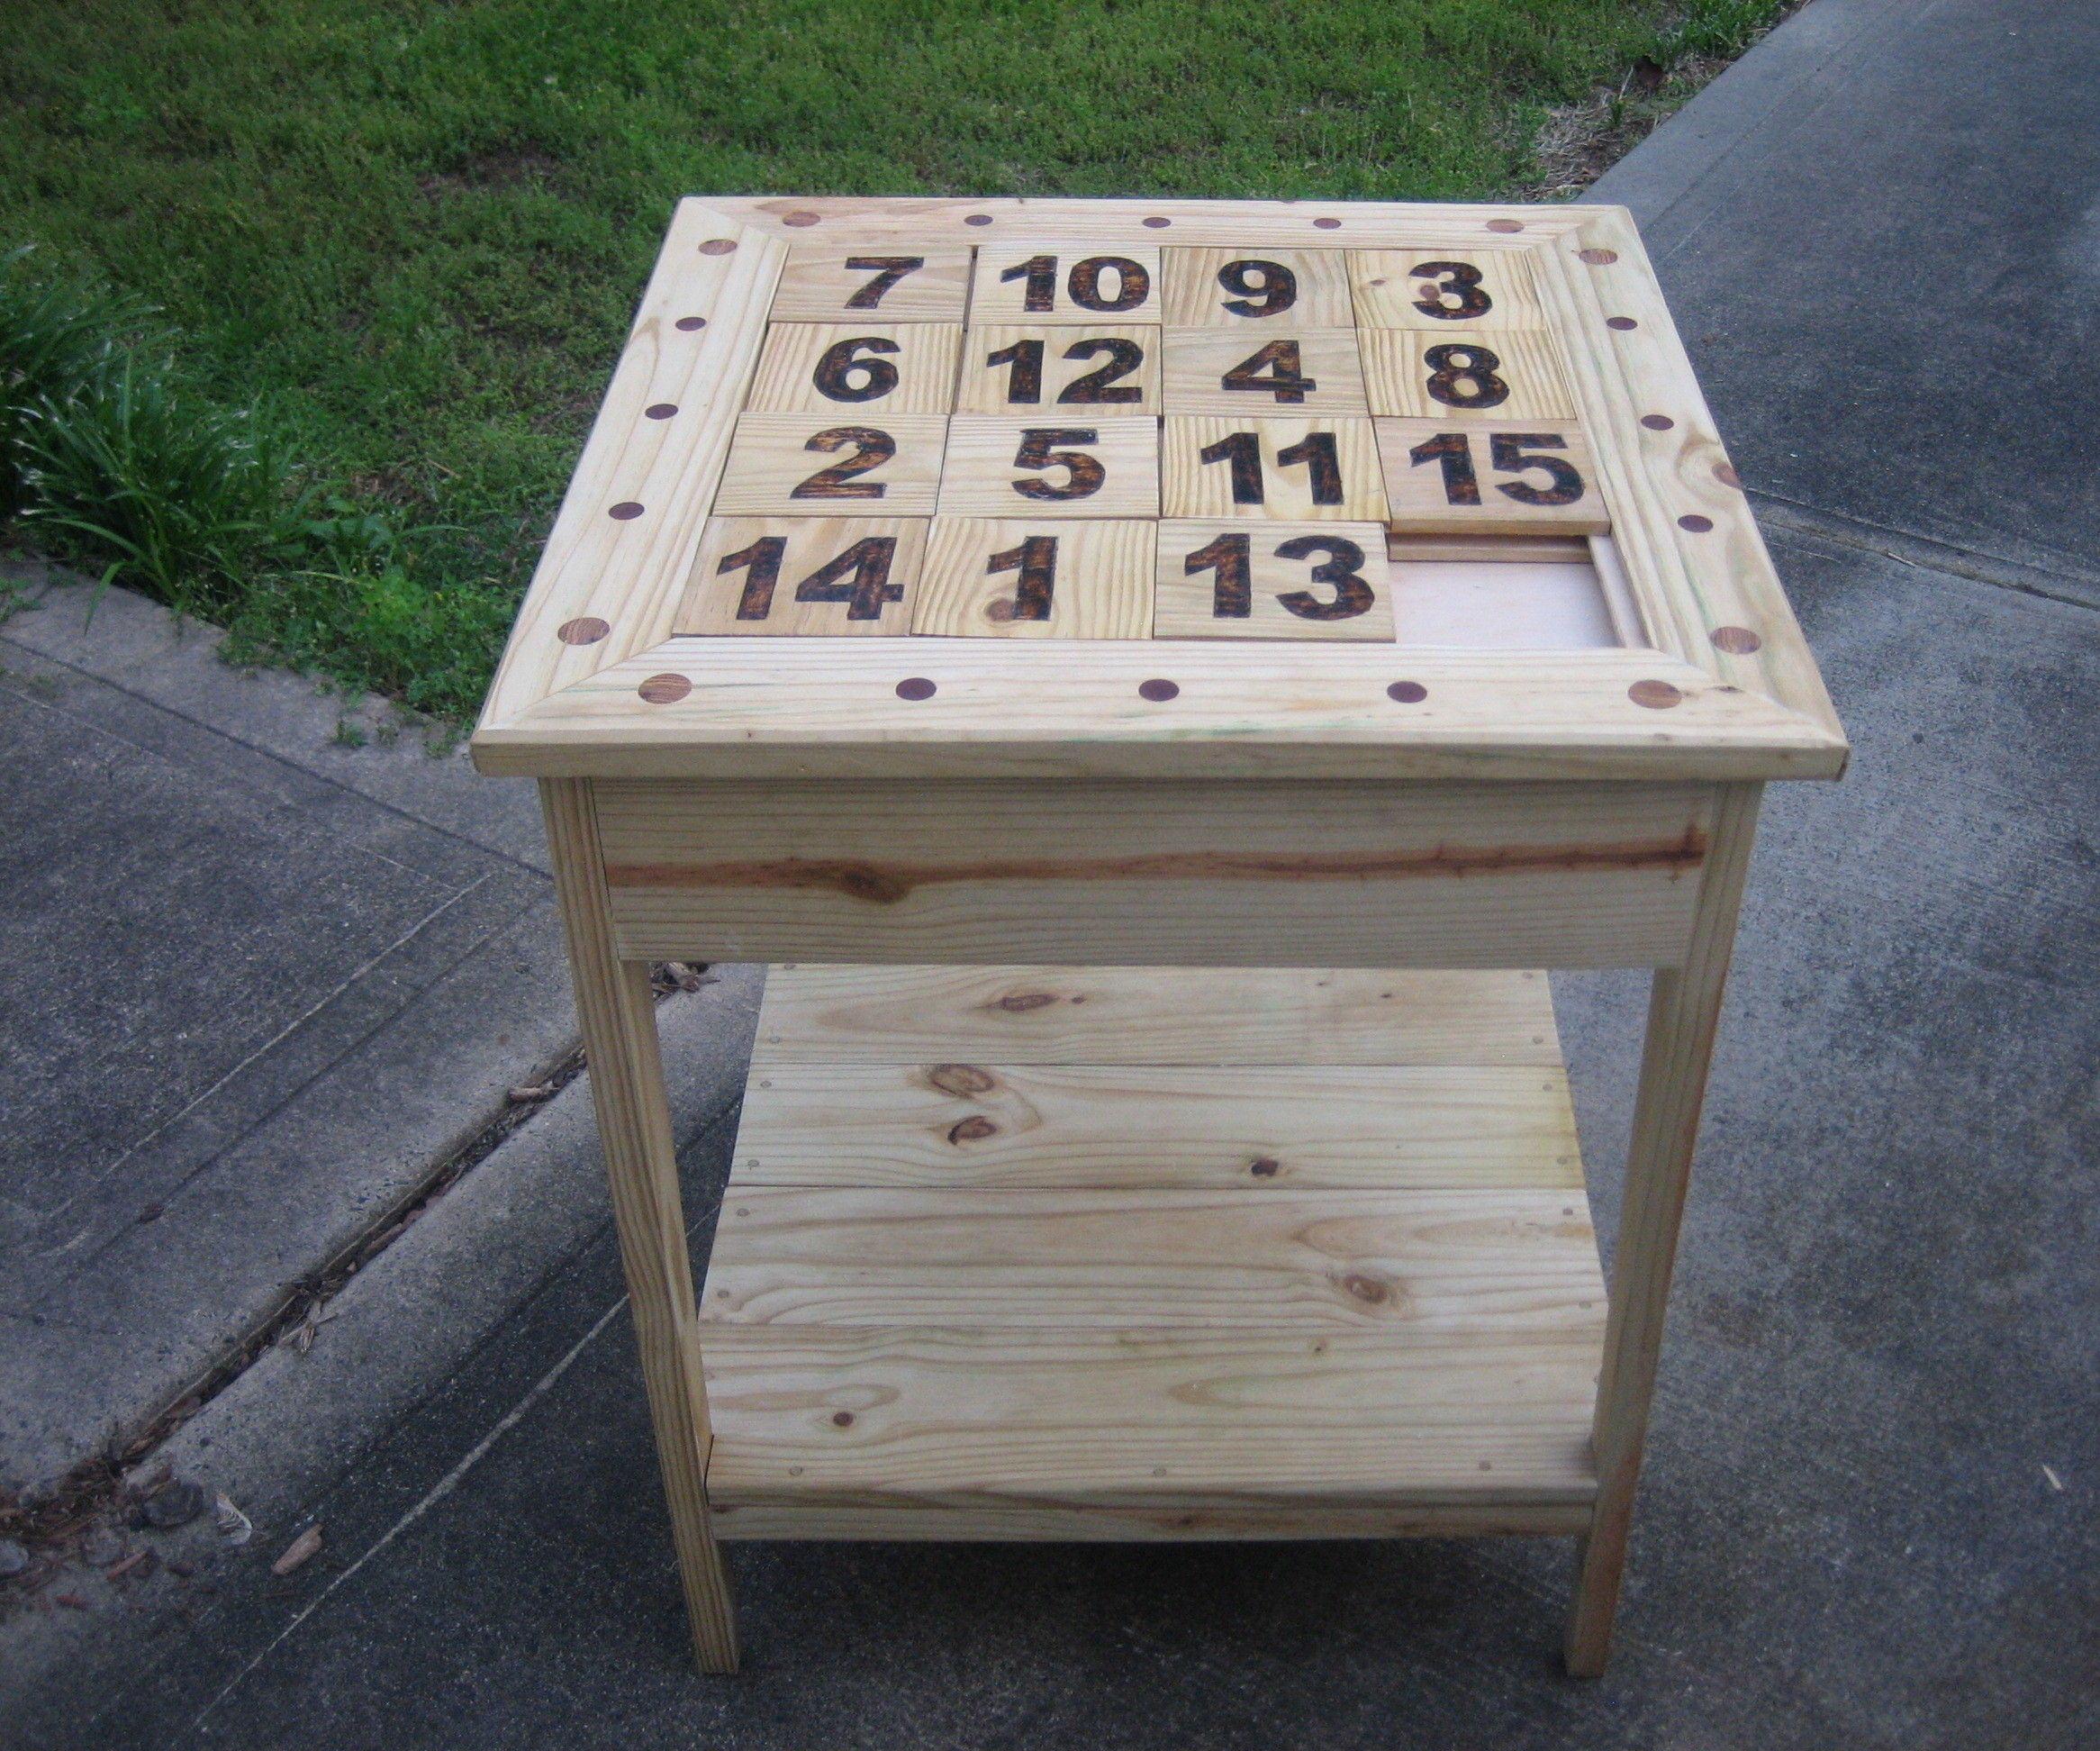 THE PUZZLE TABLE